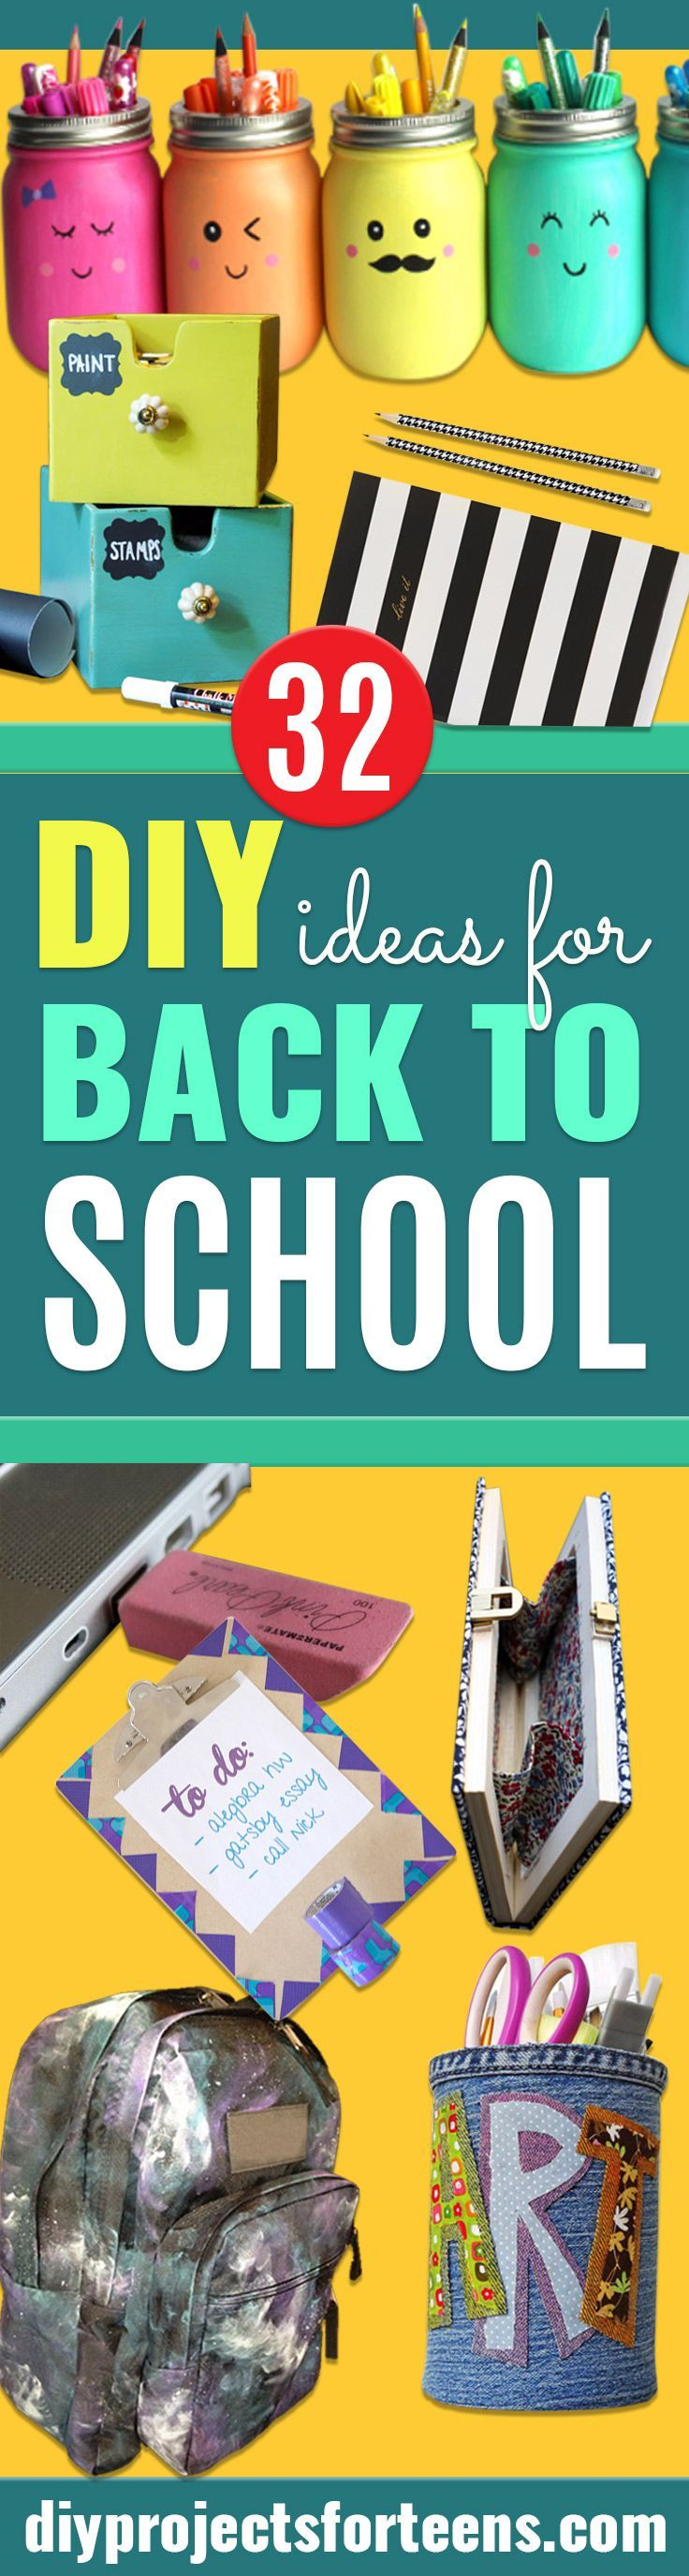 DIY School Supplies You Need For Back To School - Cuter, Cool and Easy Projects for Teens, Tweens and Kids to Make for Middle School and High School. Fun Ideas for Backpacks, Pencils, Notebooks, Organizers, Binders. Popular Pins for Teens, Tweens and Teen